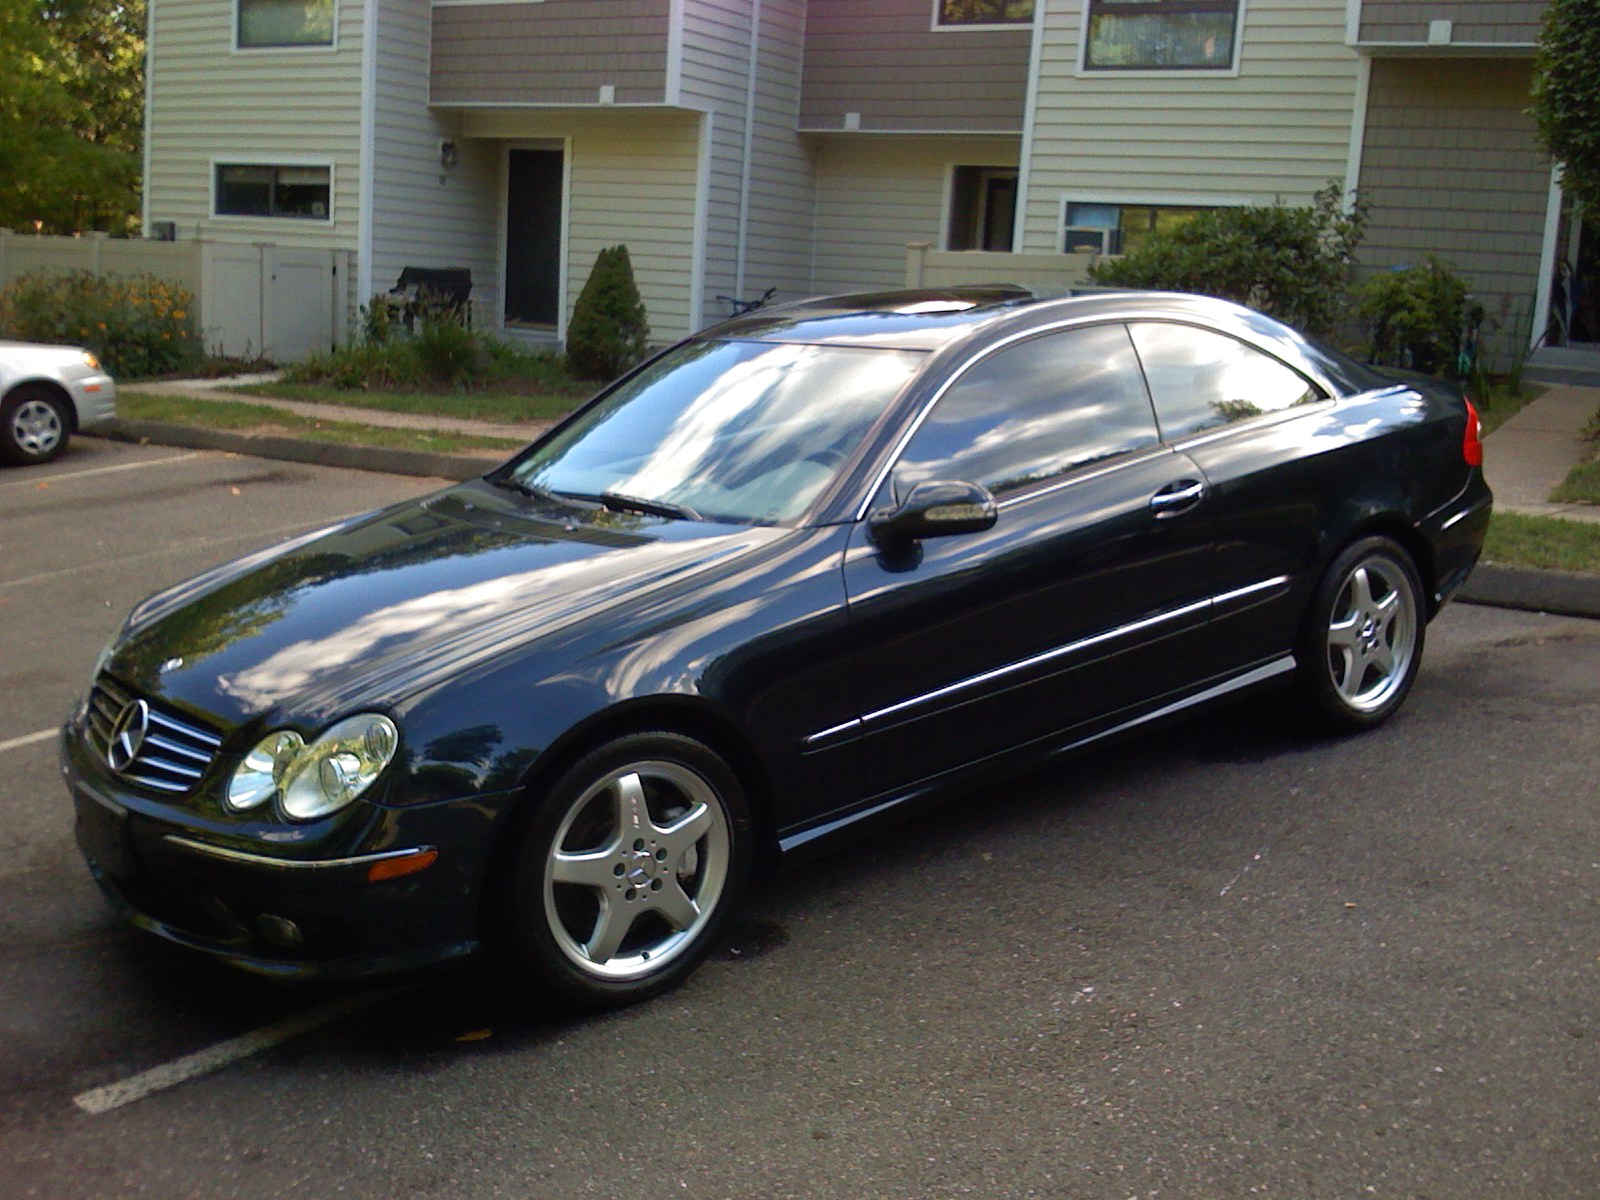 Mercedes benz clk 500 photos 7 on better parts ltd for Looking for mercedes benz parts